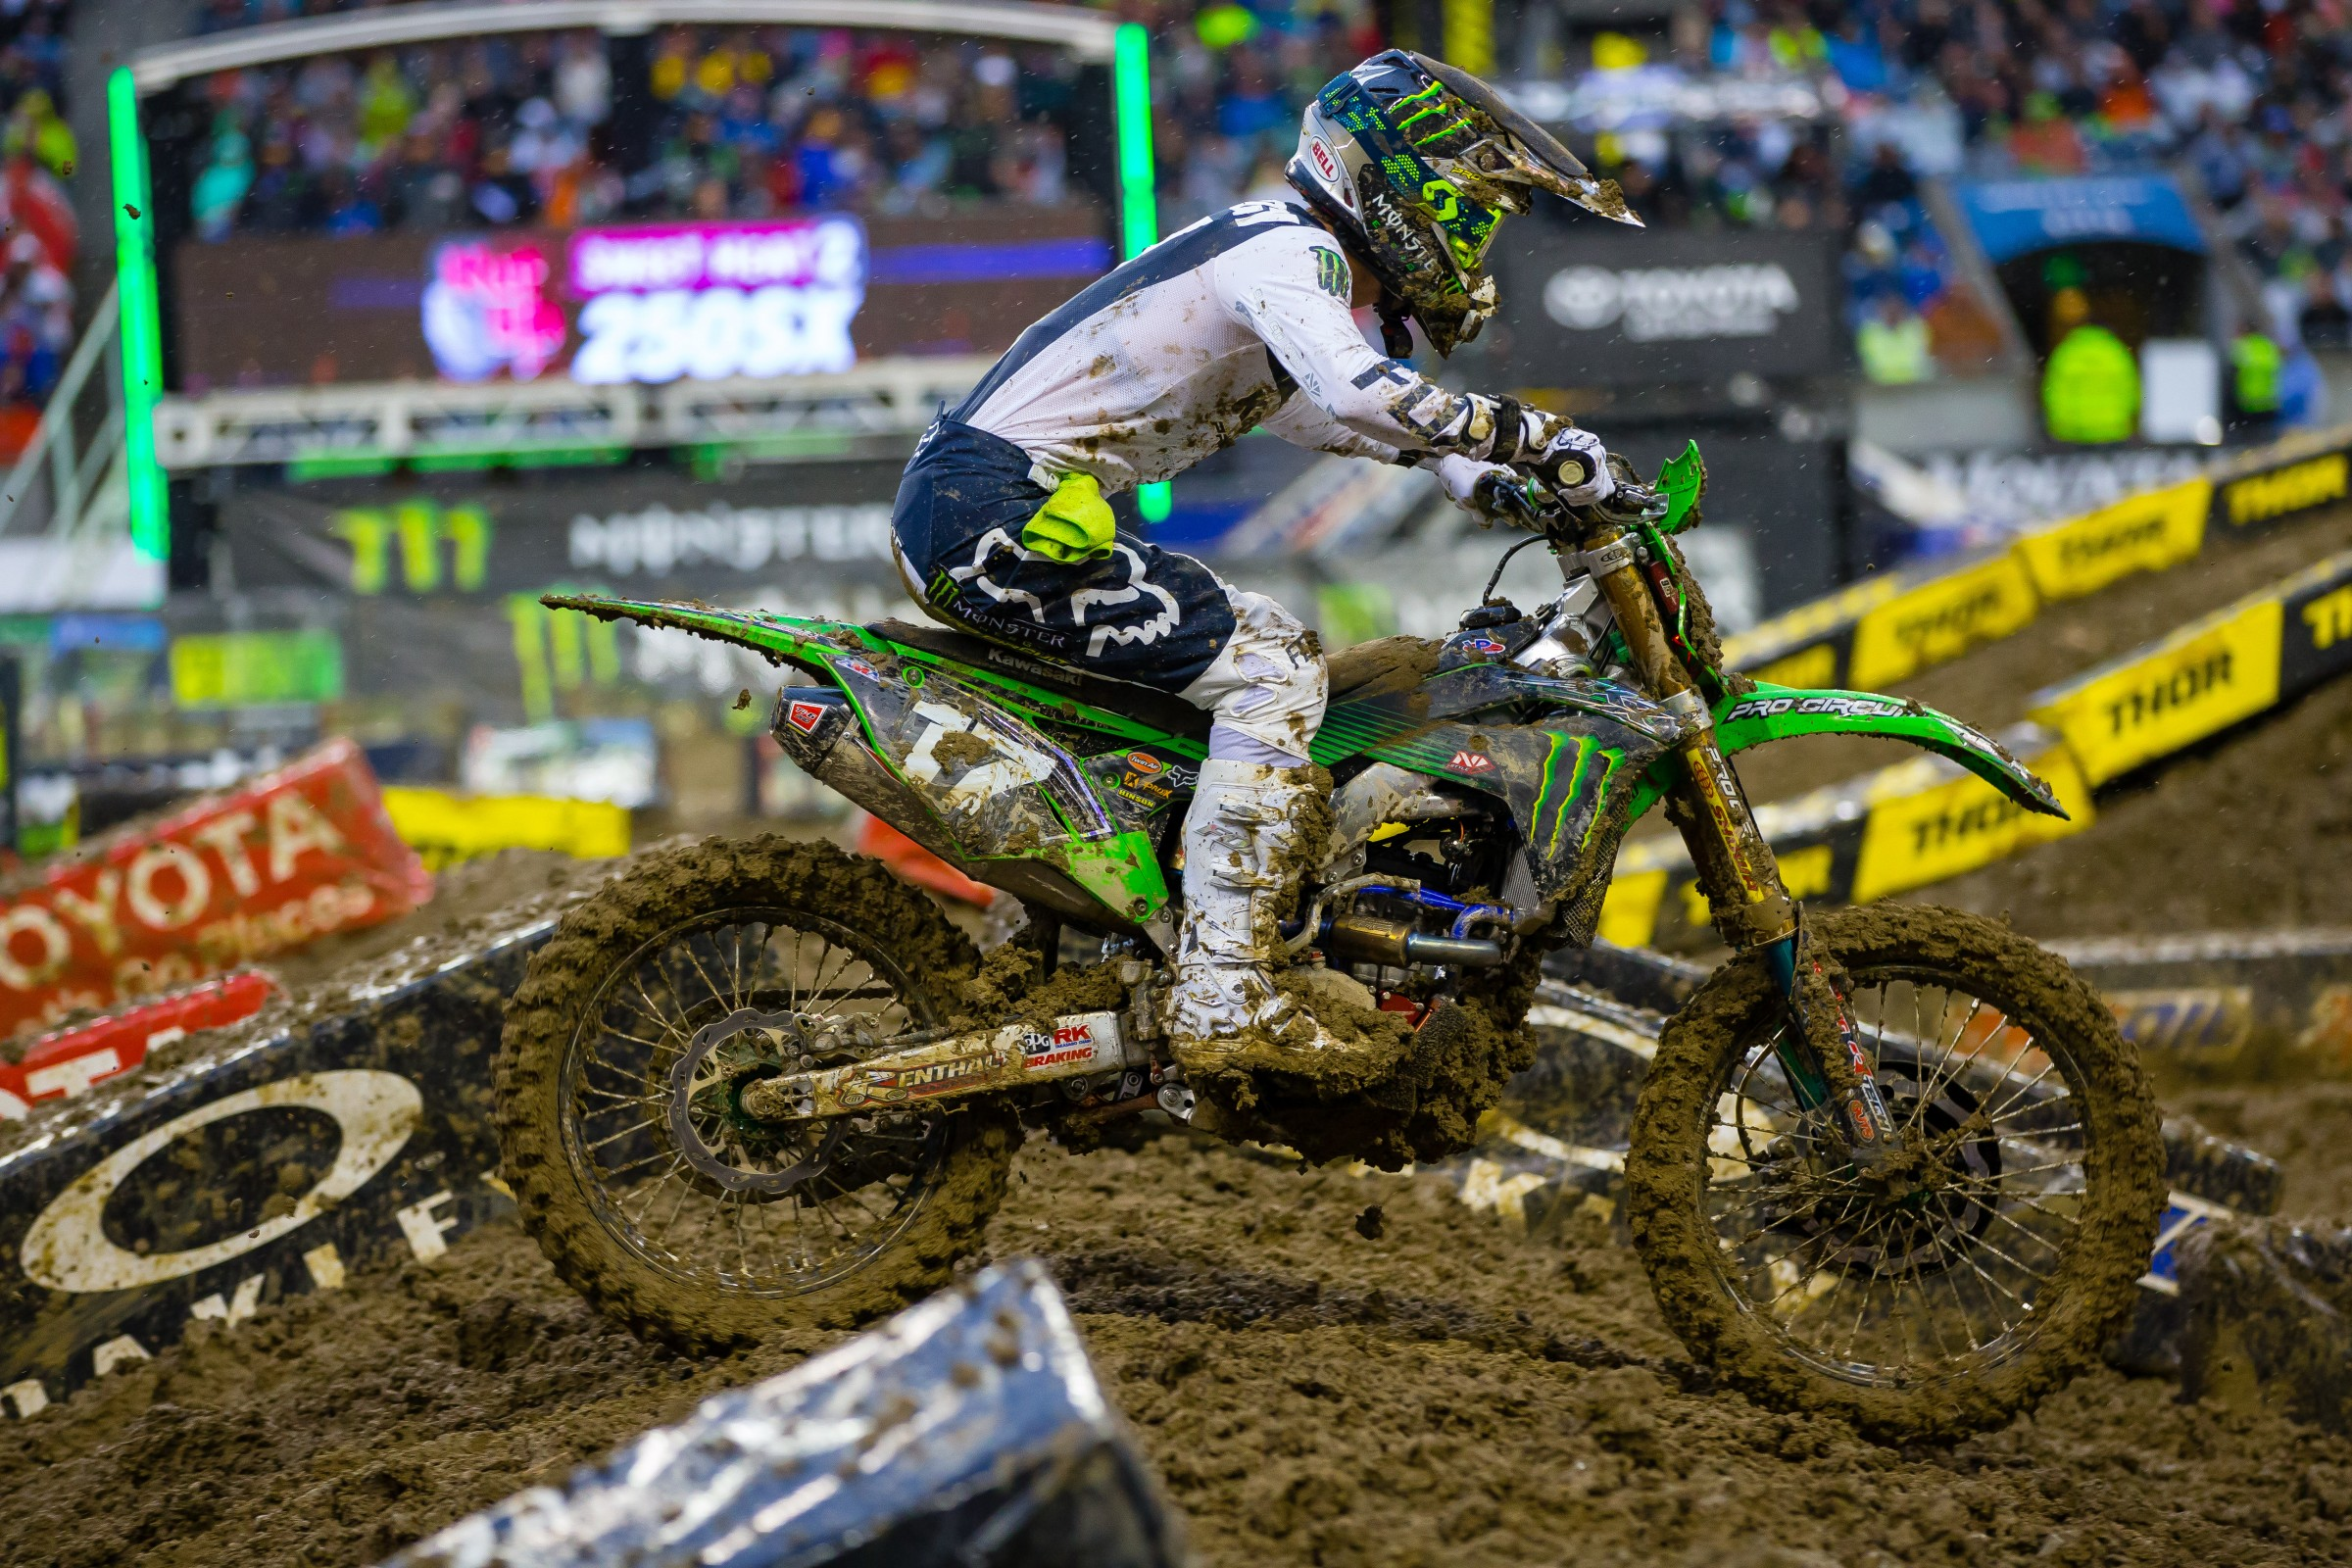 Finishing 12th on the night, an unfortunate crash in Seattle cost Savatgy a valuable chance to make up points on Plessinger.